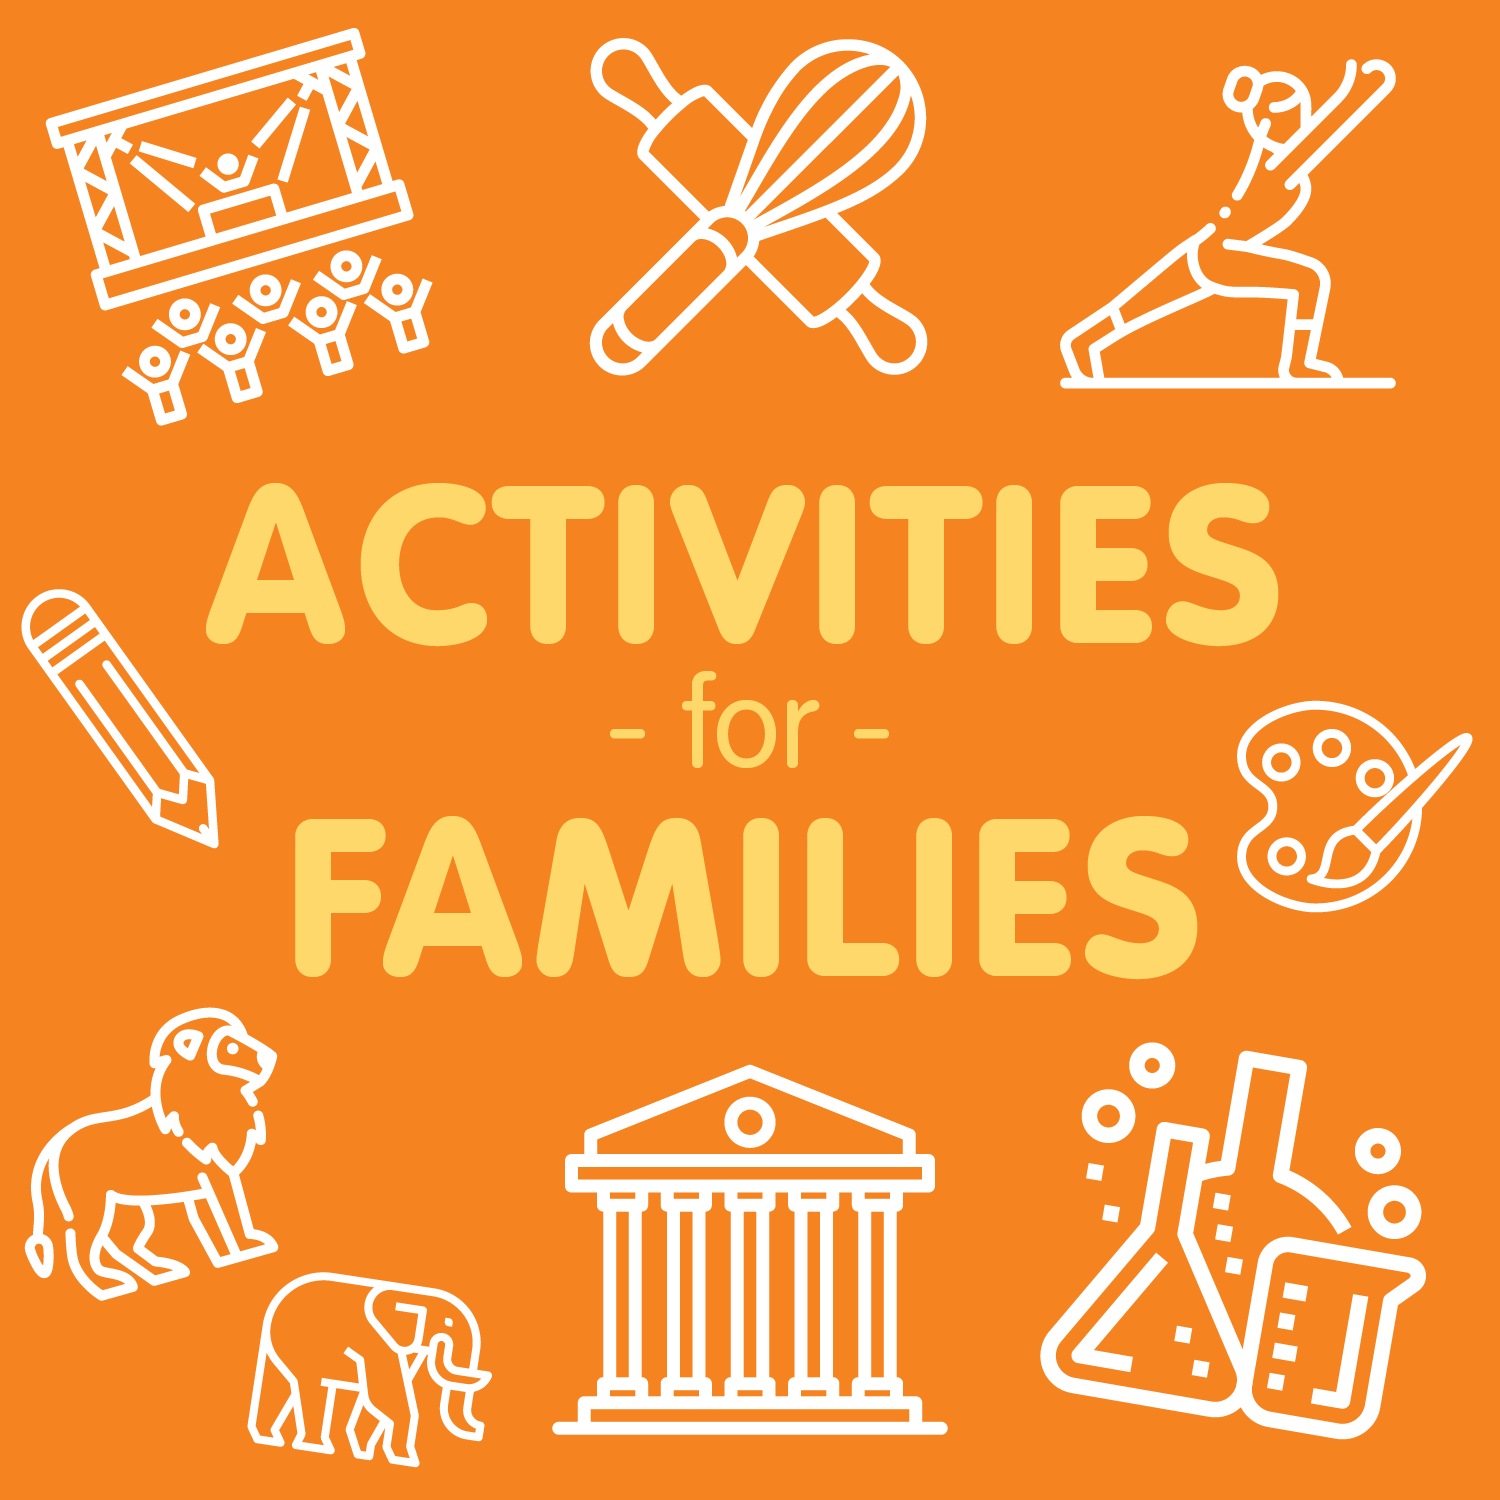 Activities for Families